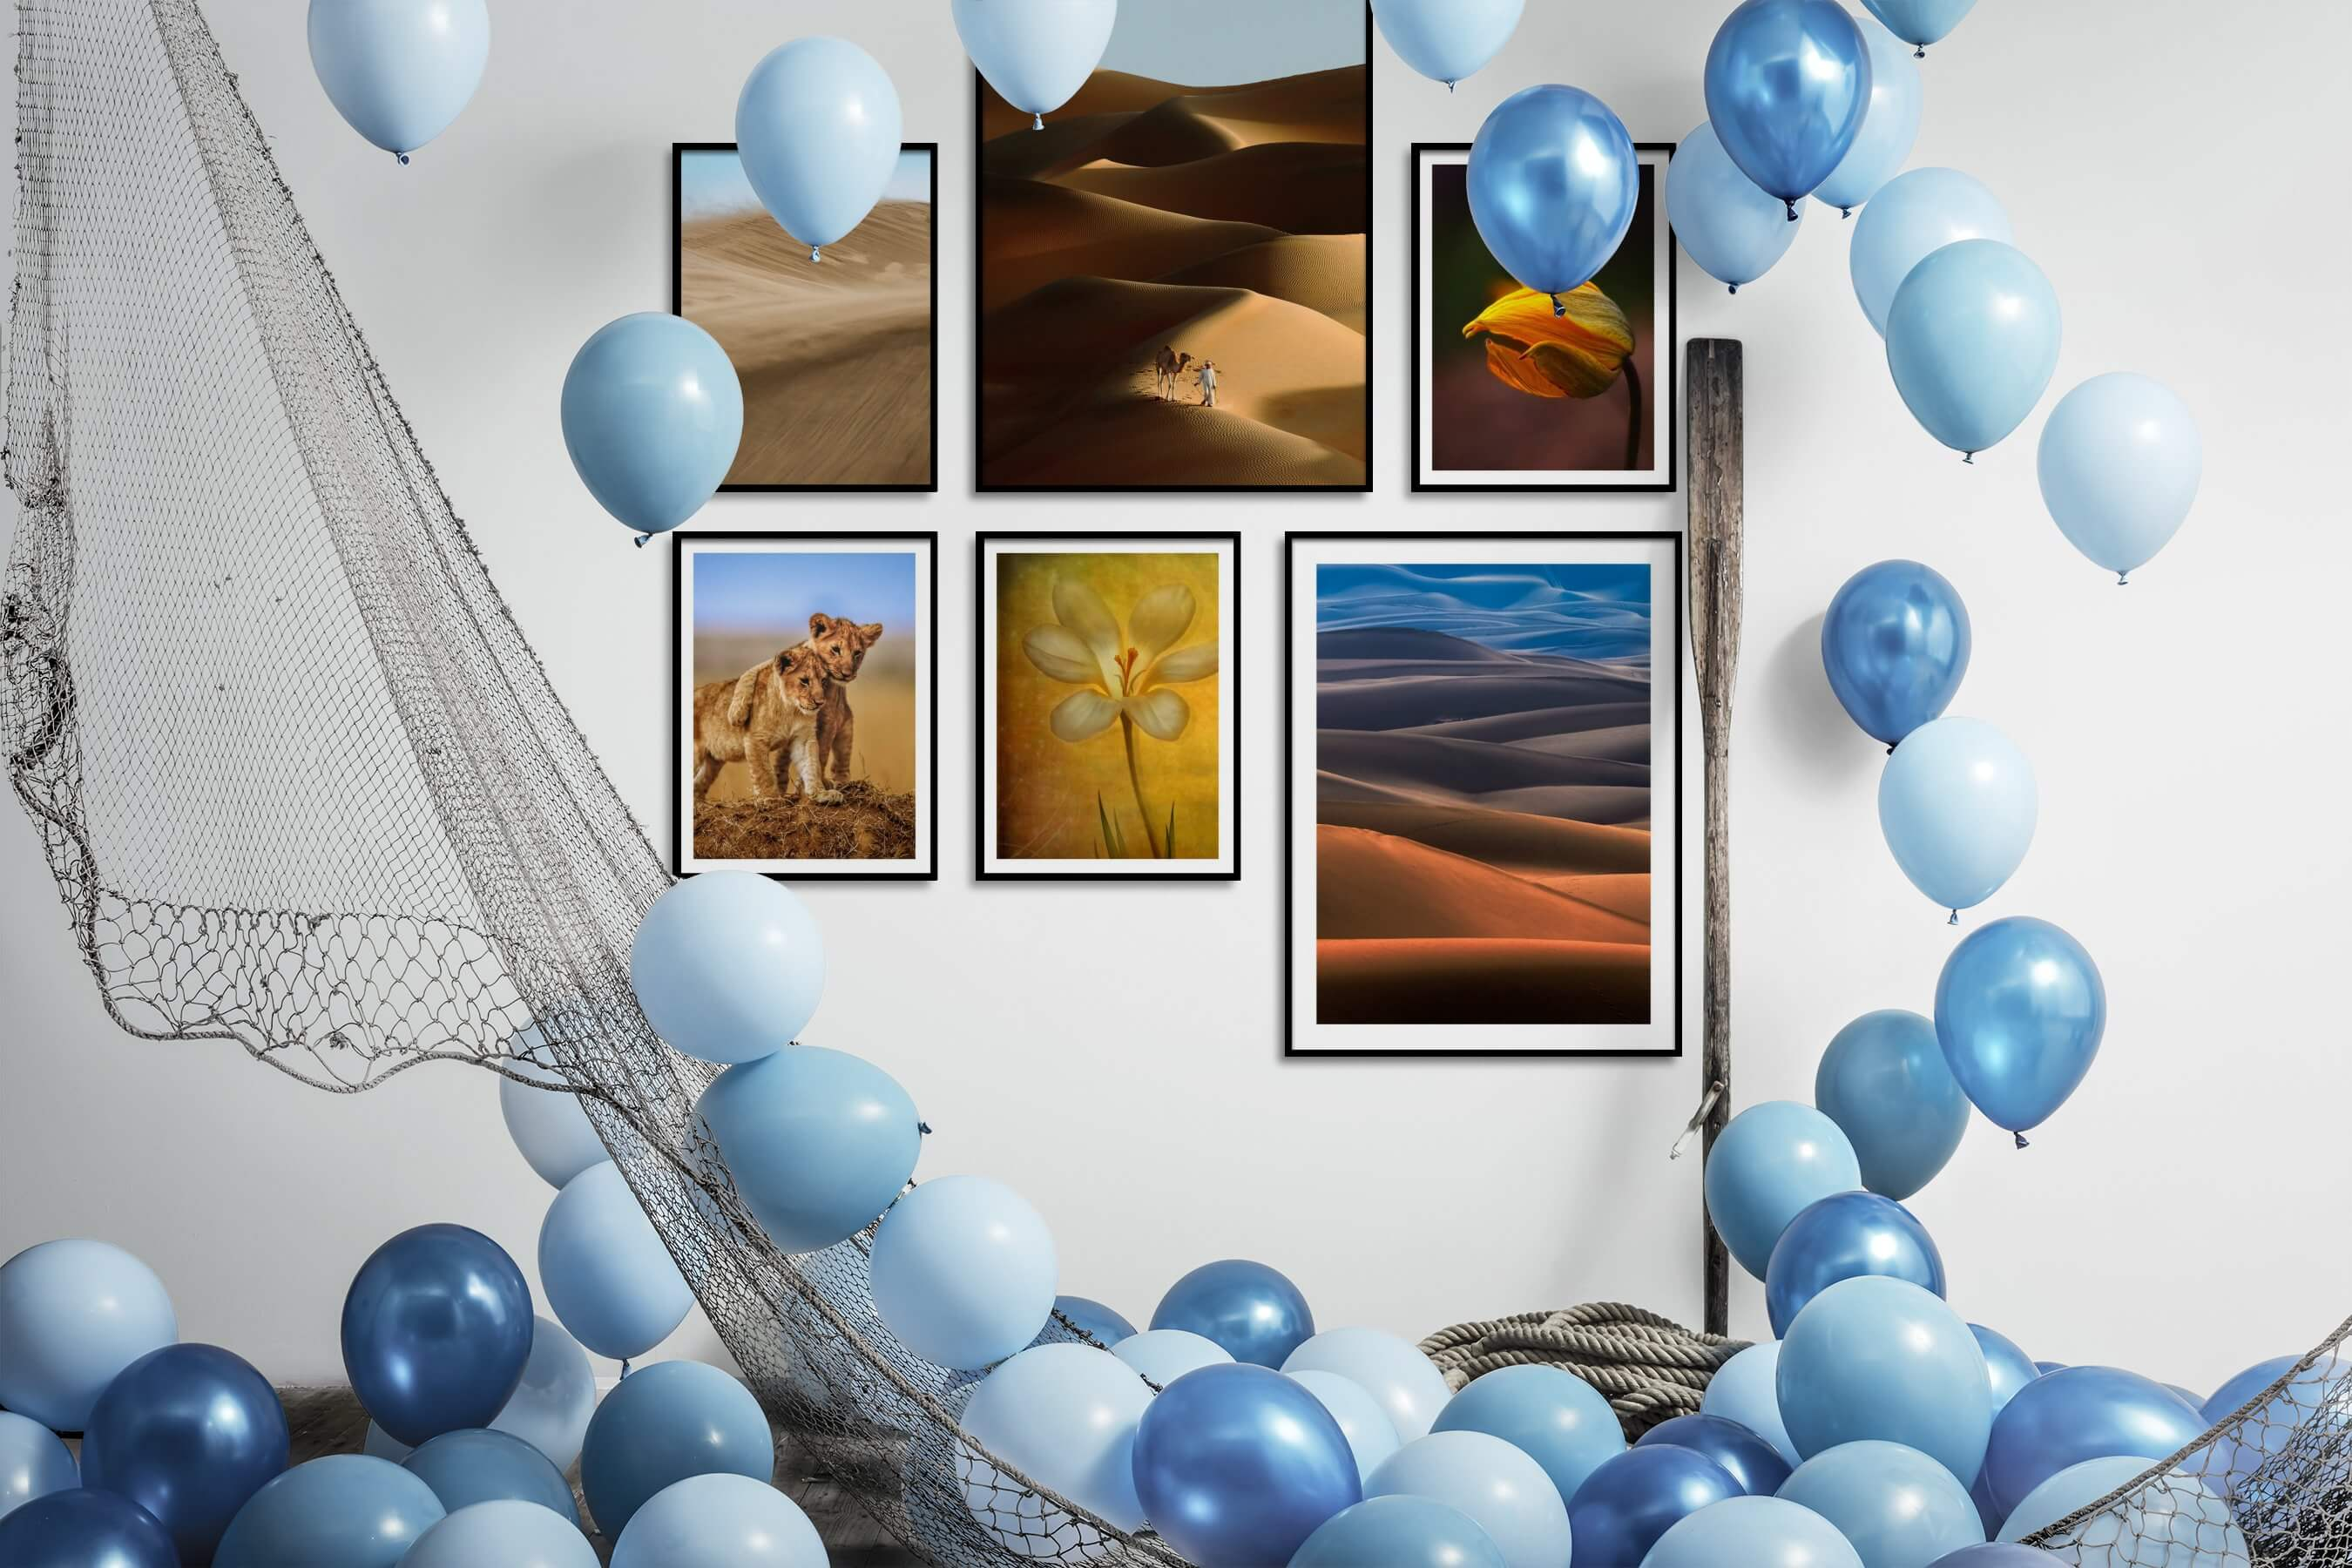 Gallery wall idea with six framed pictures arranged on a wall depicting For the Moderate, Nature, Animals, Flowers & Plants, and Vintage